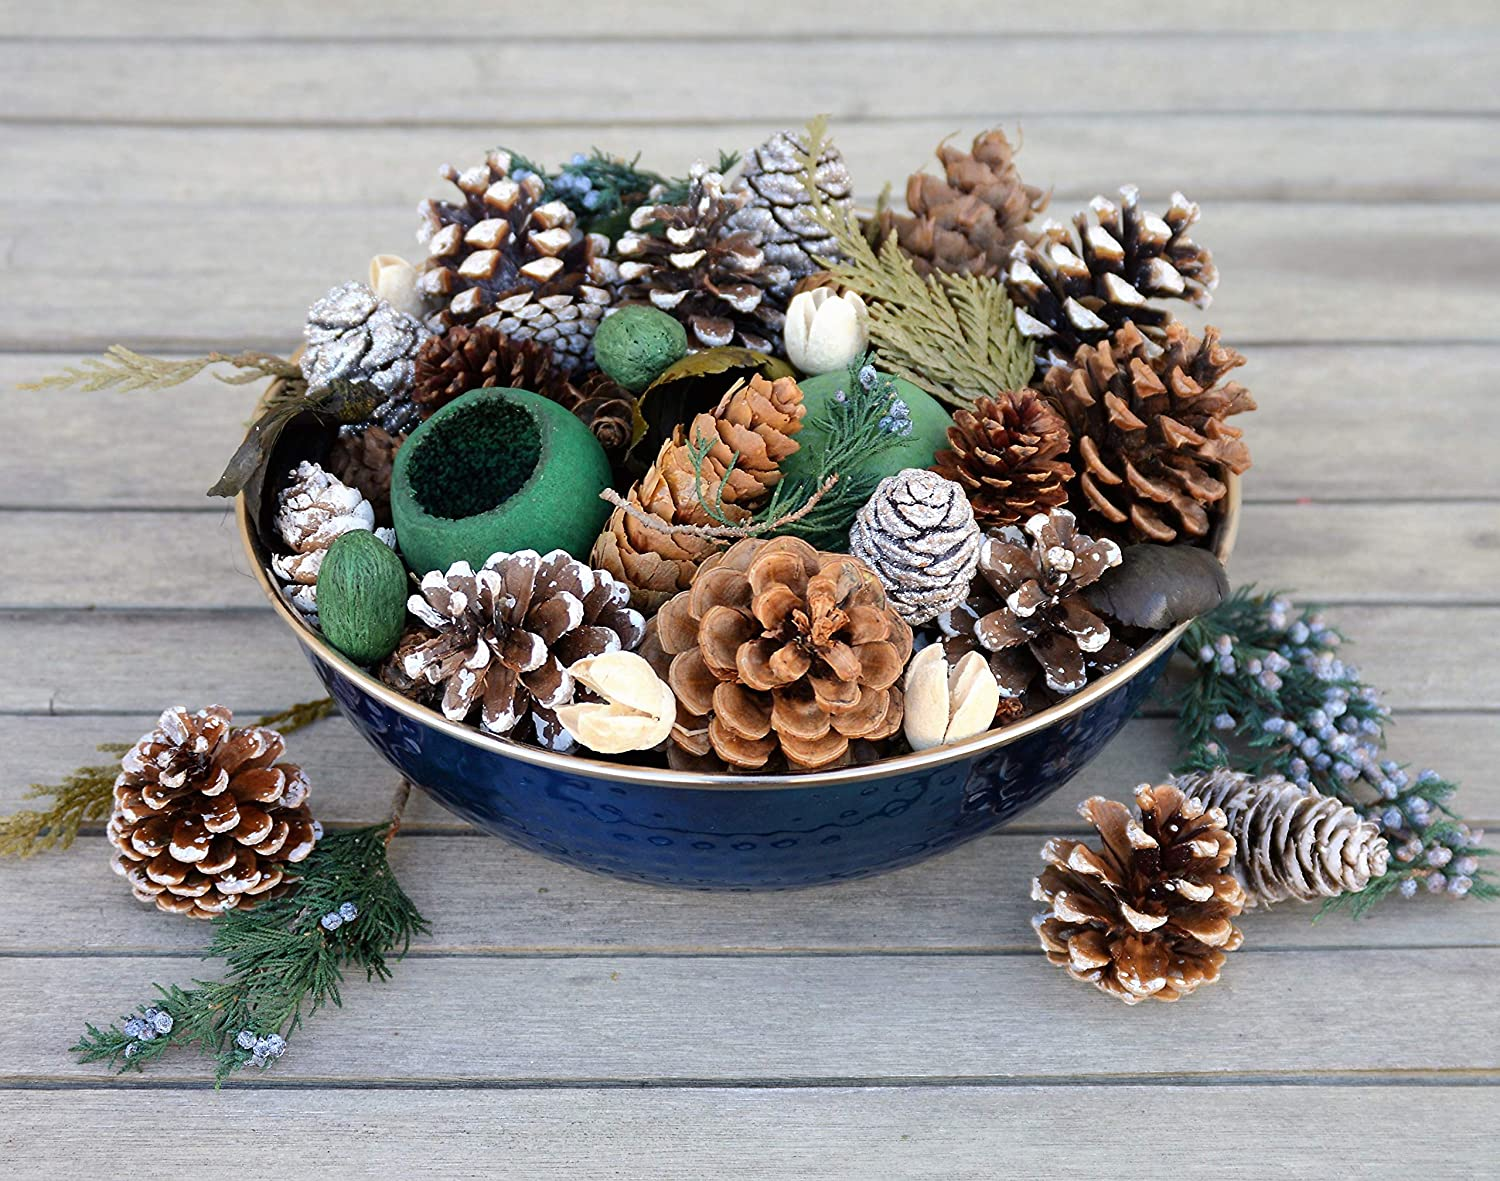 Manu Home Holiday Pine Potpourri 1 year warranty Beautiful San Francisco Mall Steel Stainless in a